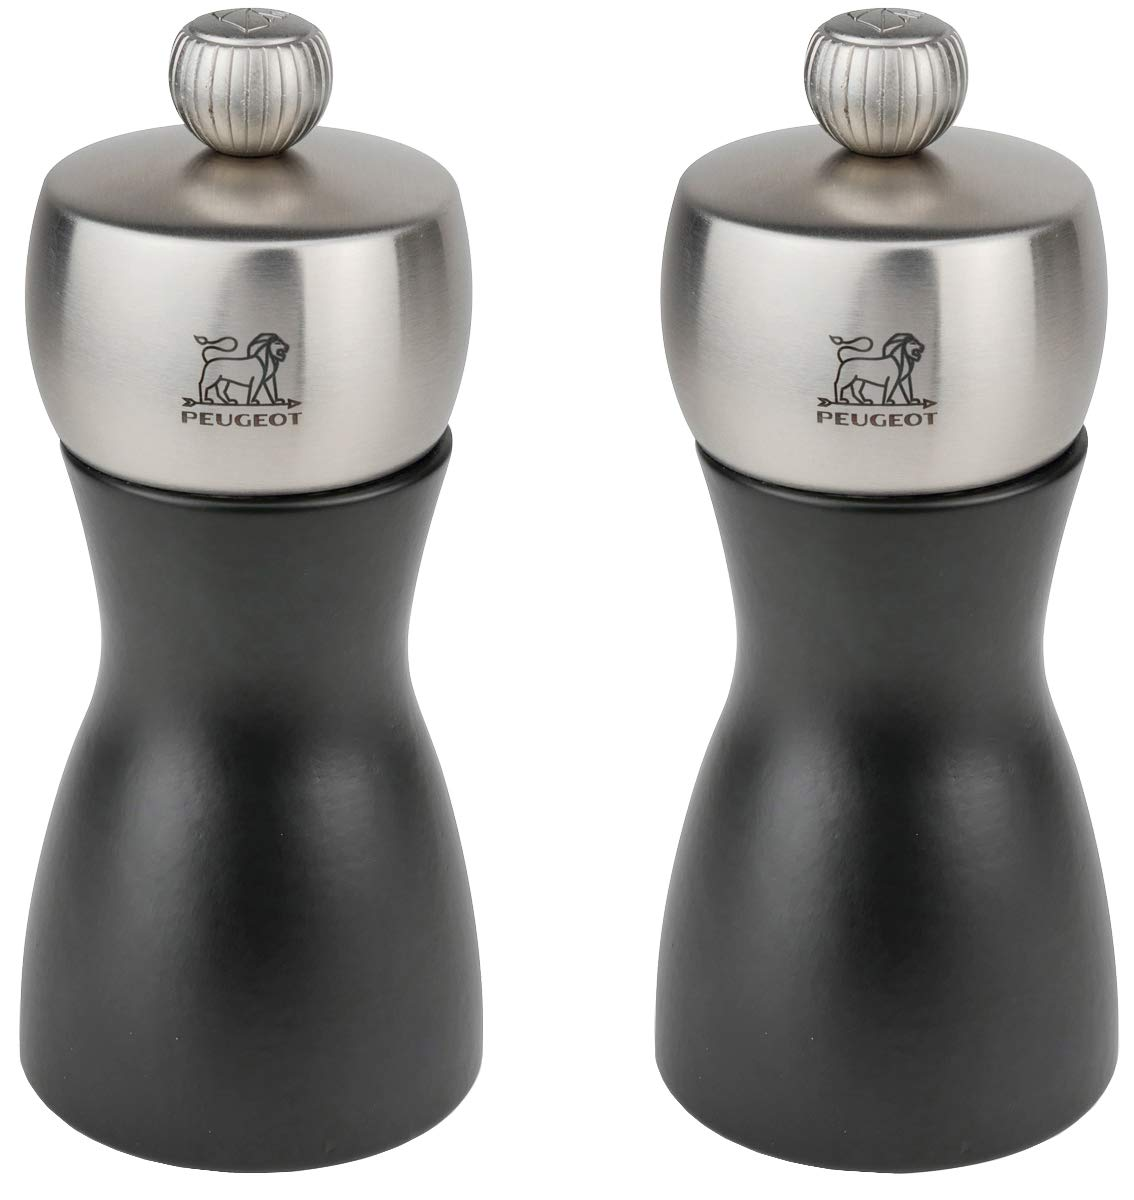 Peugeot Fidji Stainless Steel Salt and Pepper Mill Set, 12cm/4 3/4-Inch, Black Matte by Peugeot